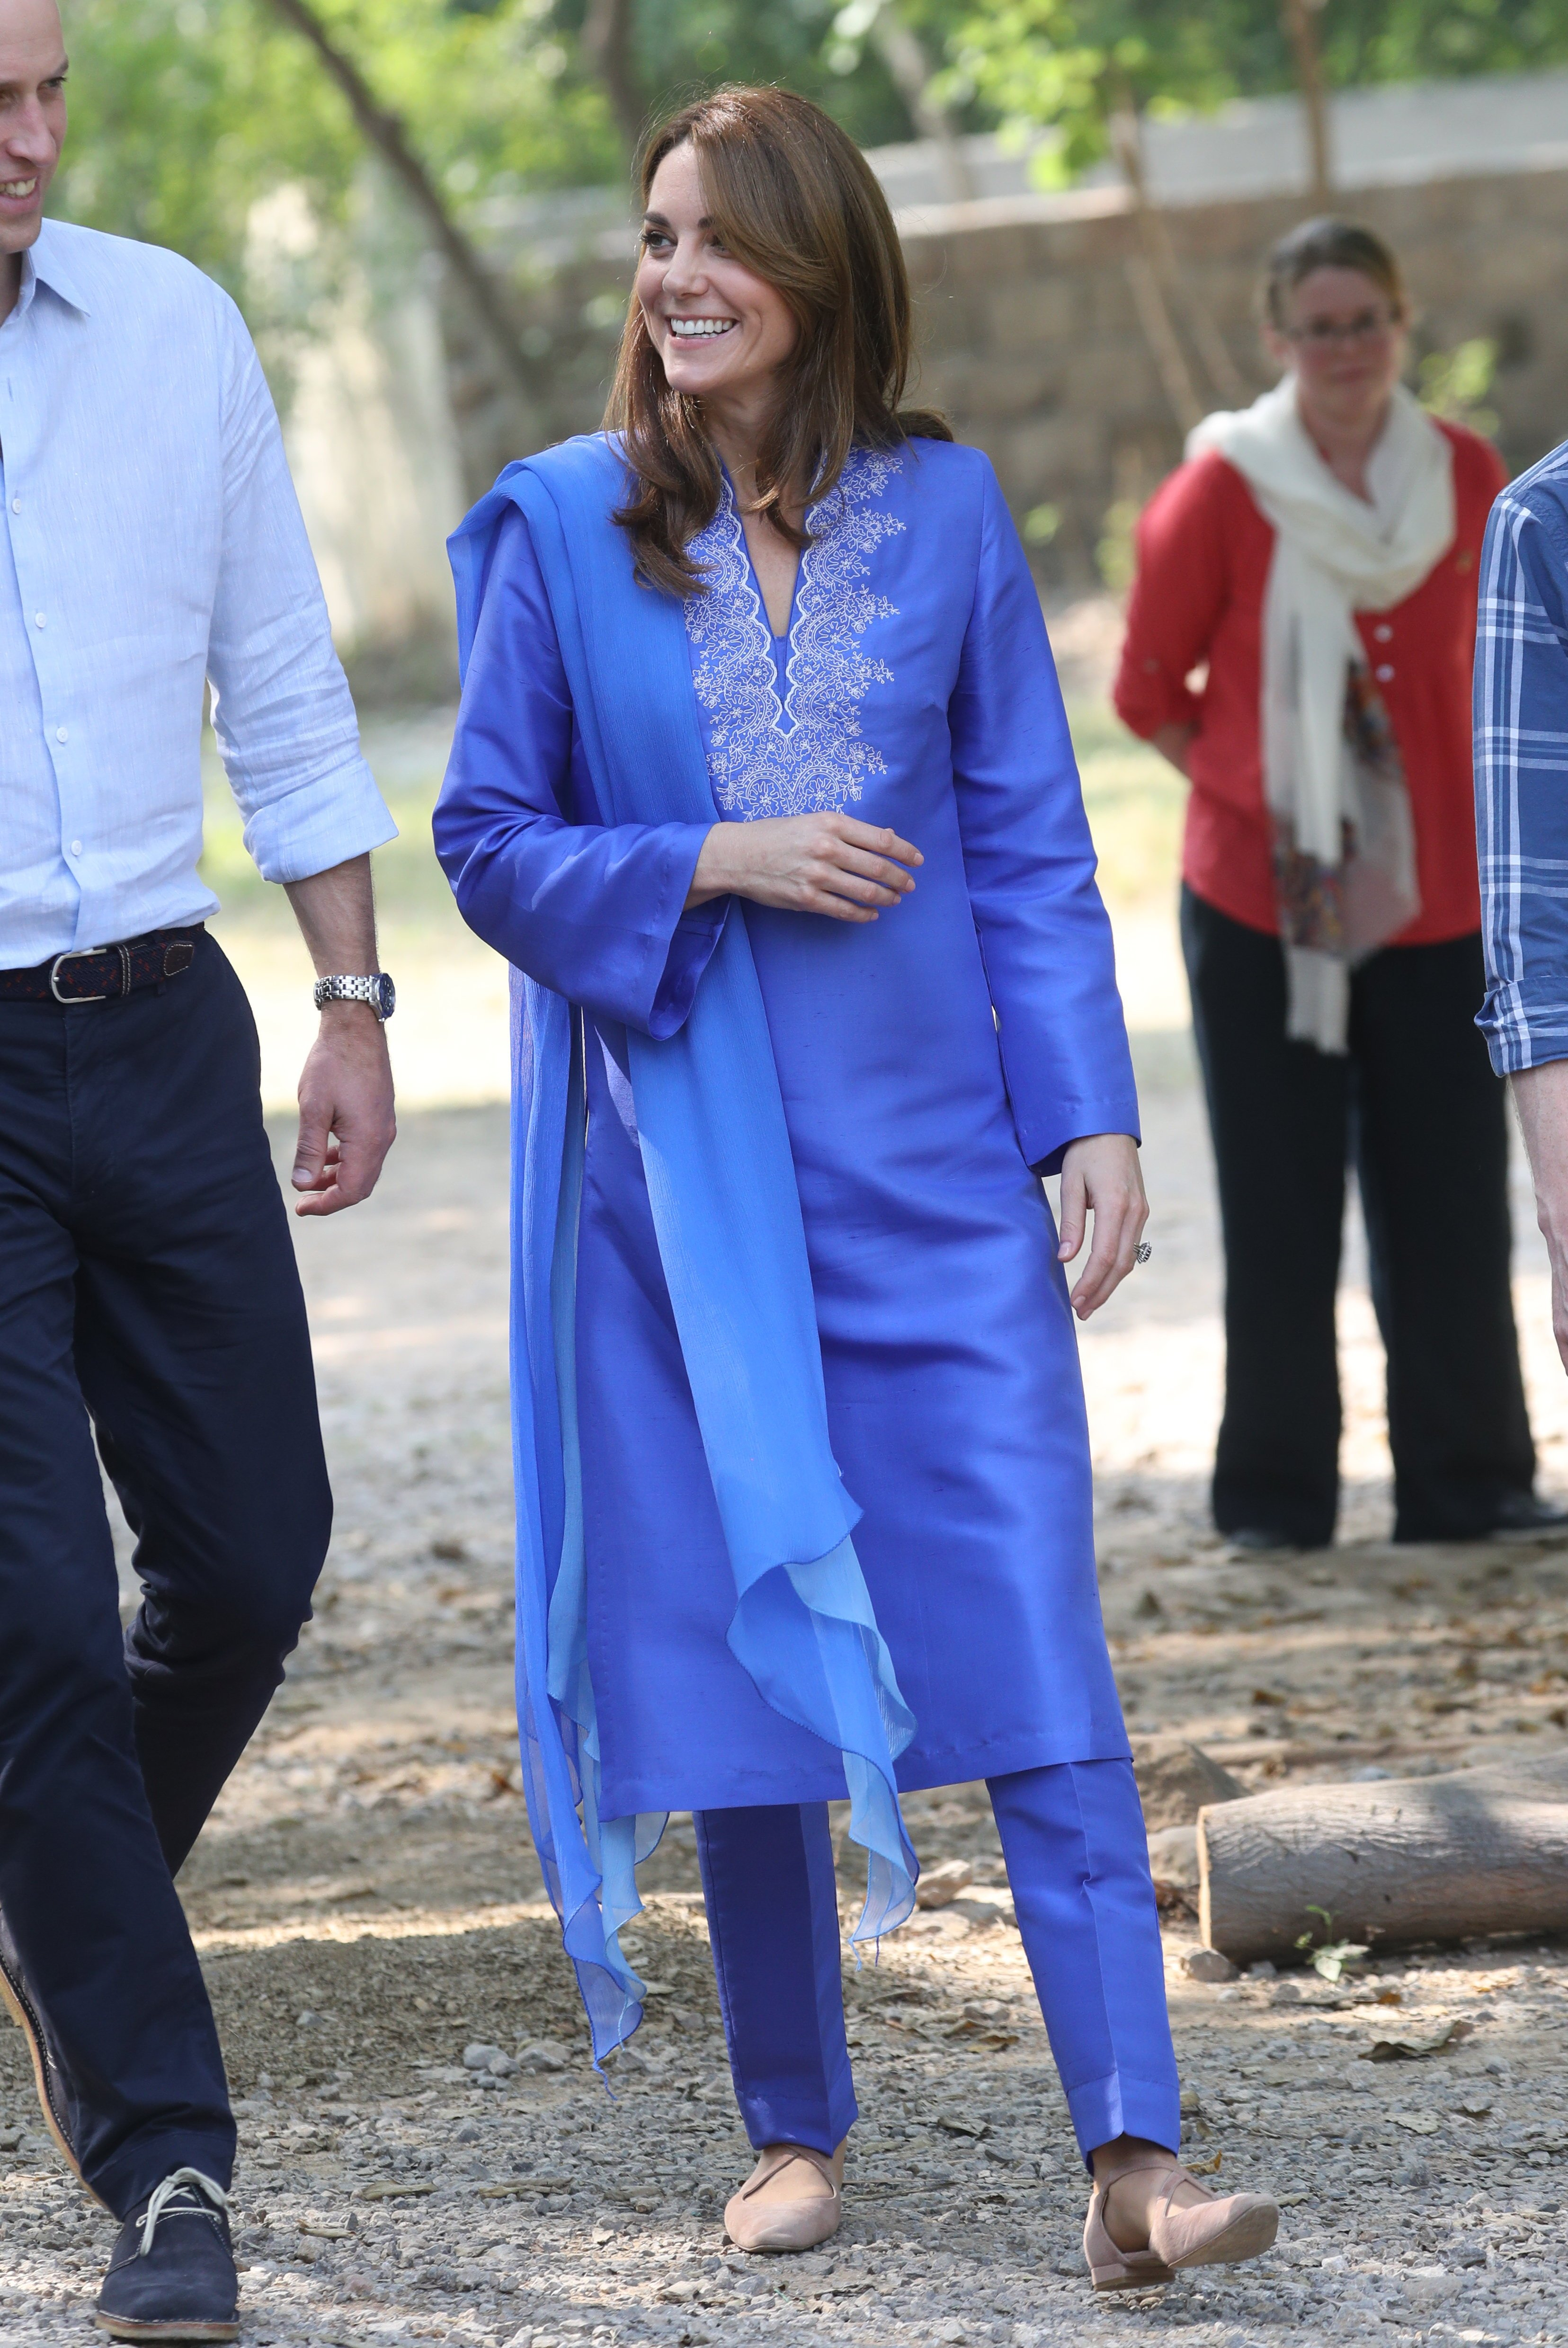 Kate looked chic in her loose blue kurta as she mingled at the school